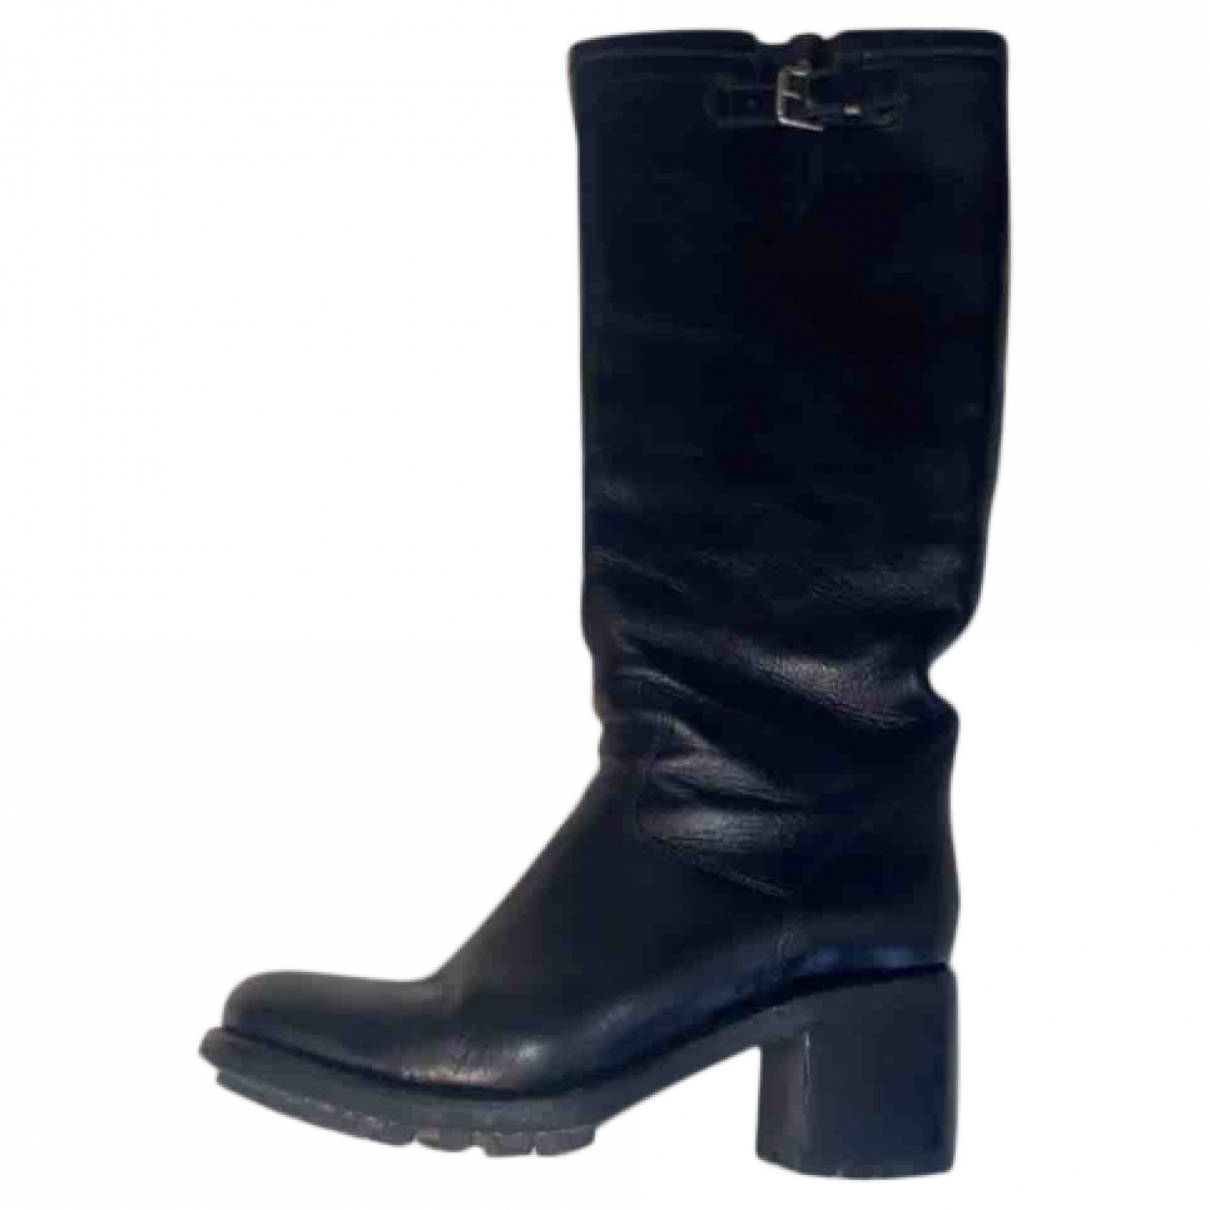 Free Lance Geronimo Black Leather Boots for Women 38.5 EU